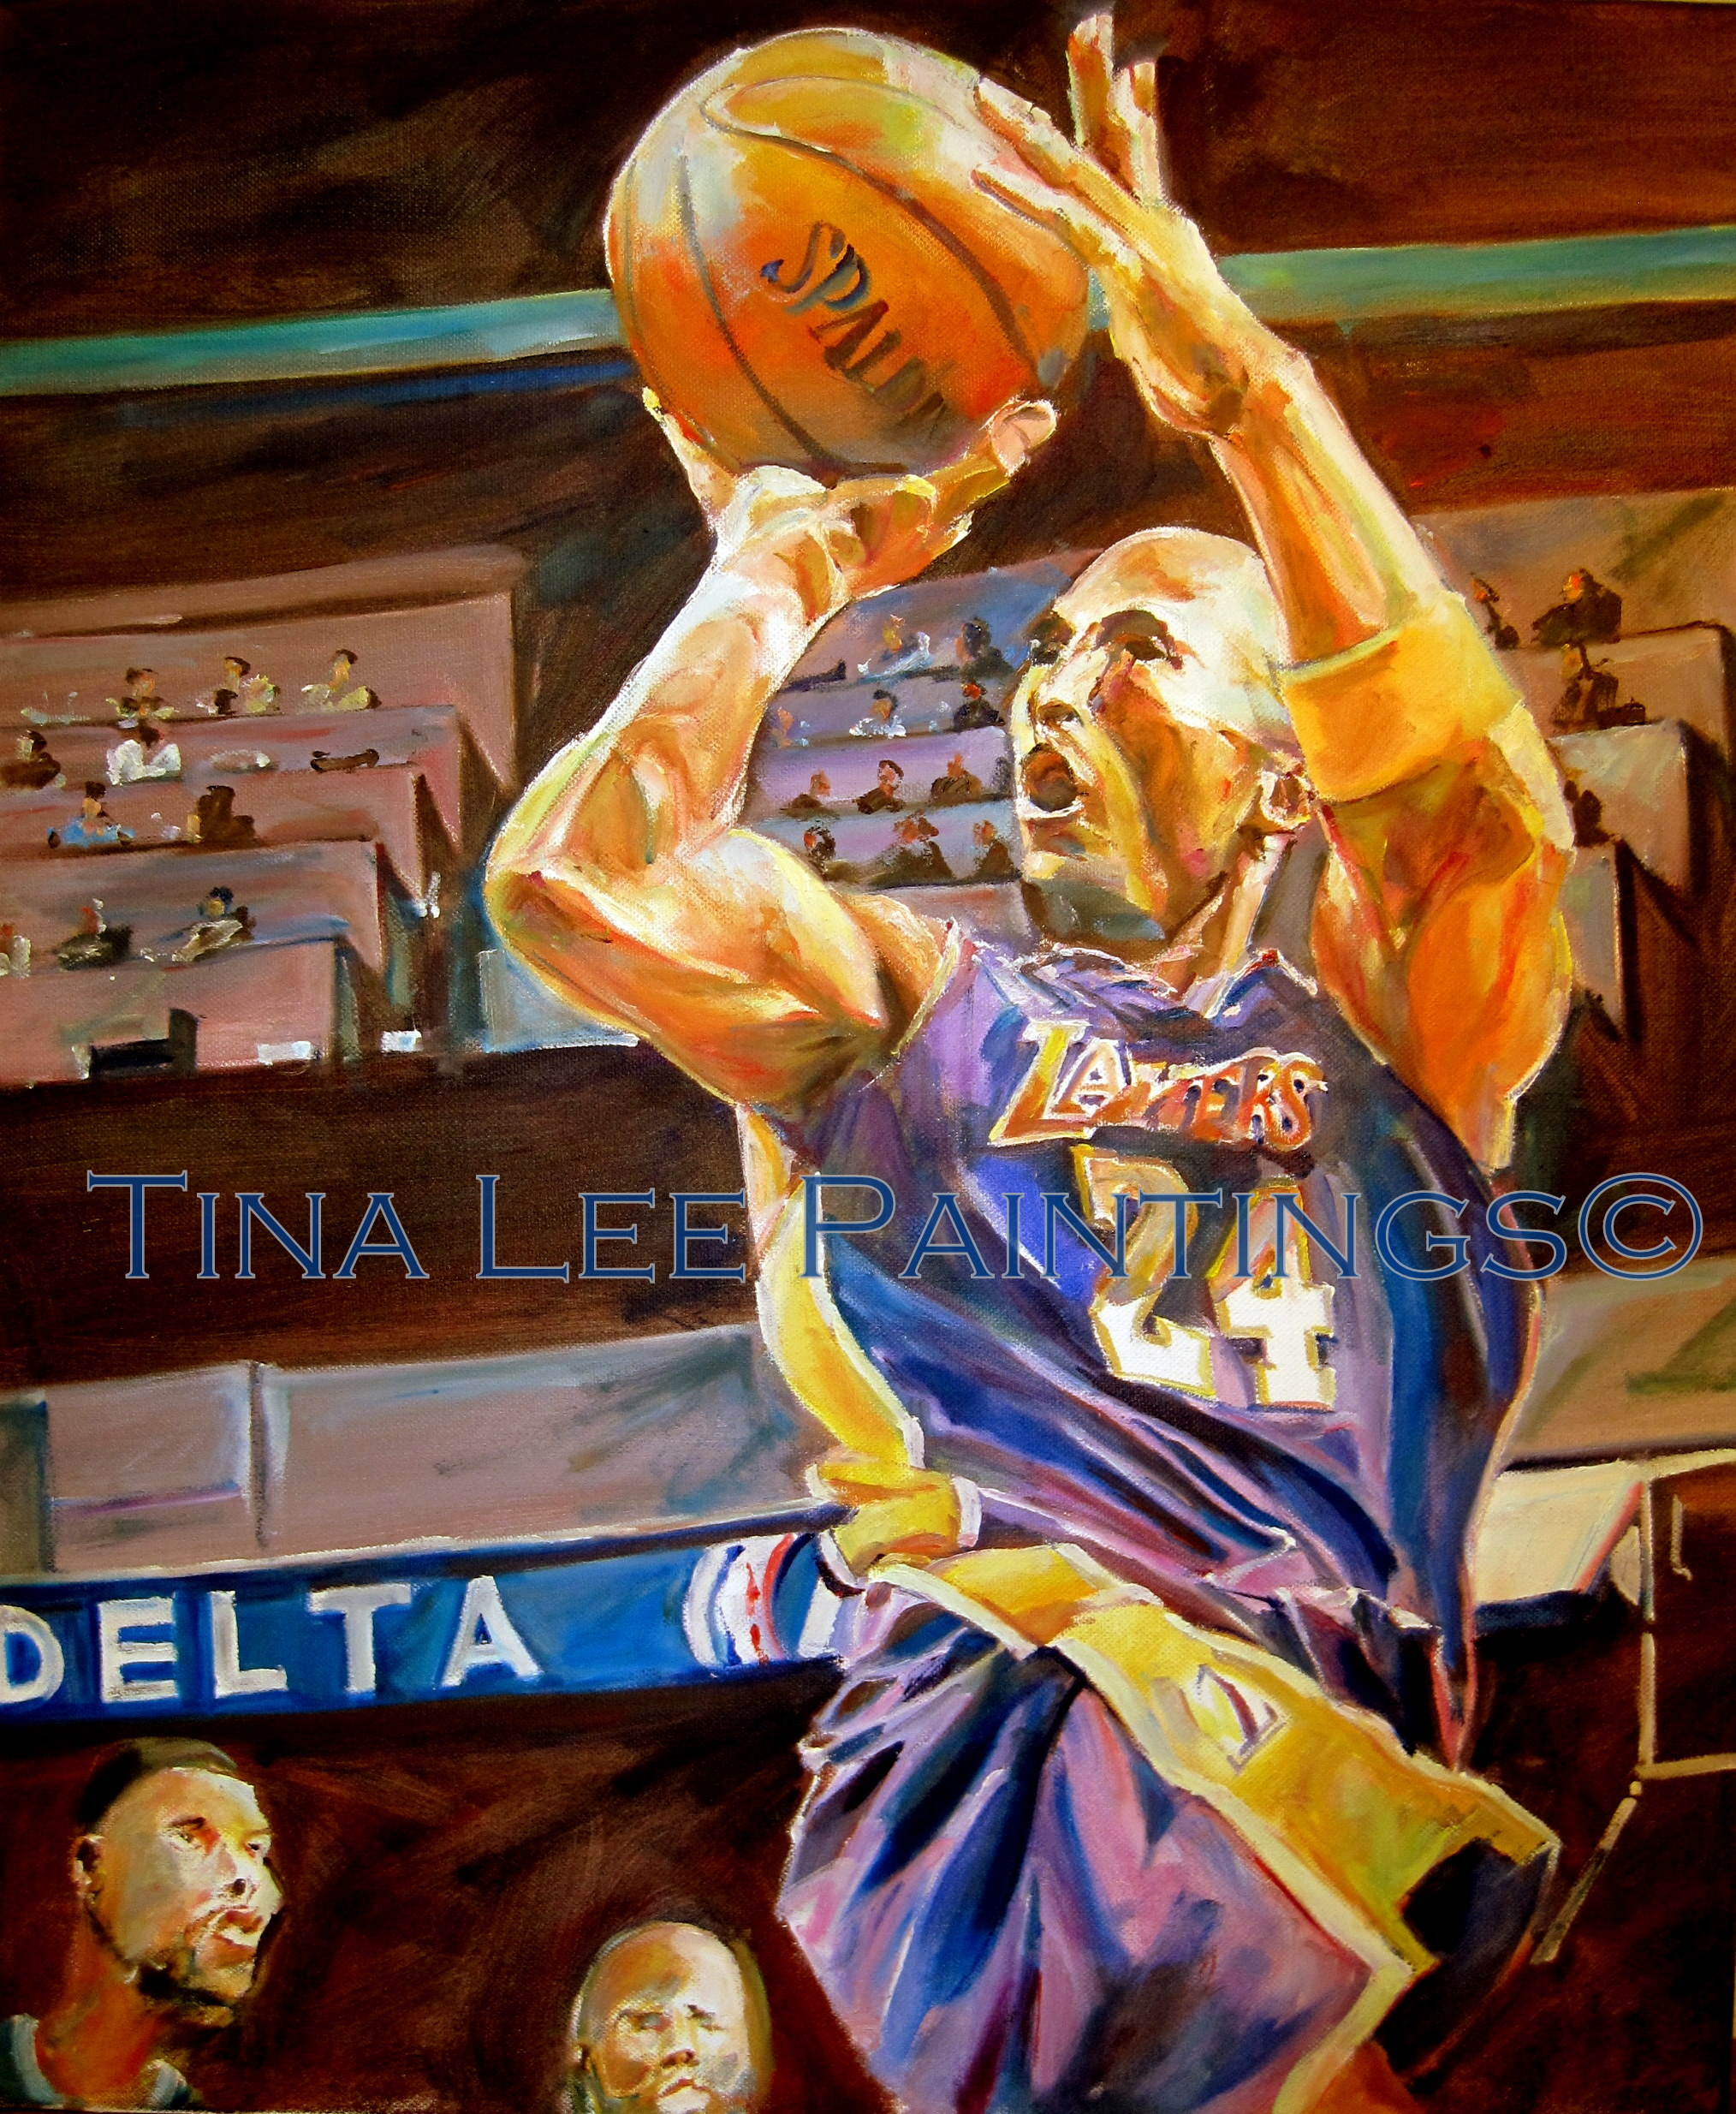 Kobe Bryant Fadeaway Jumper. KOBE Bryant, internationally